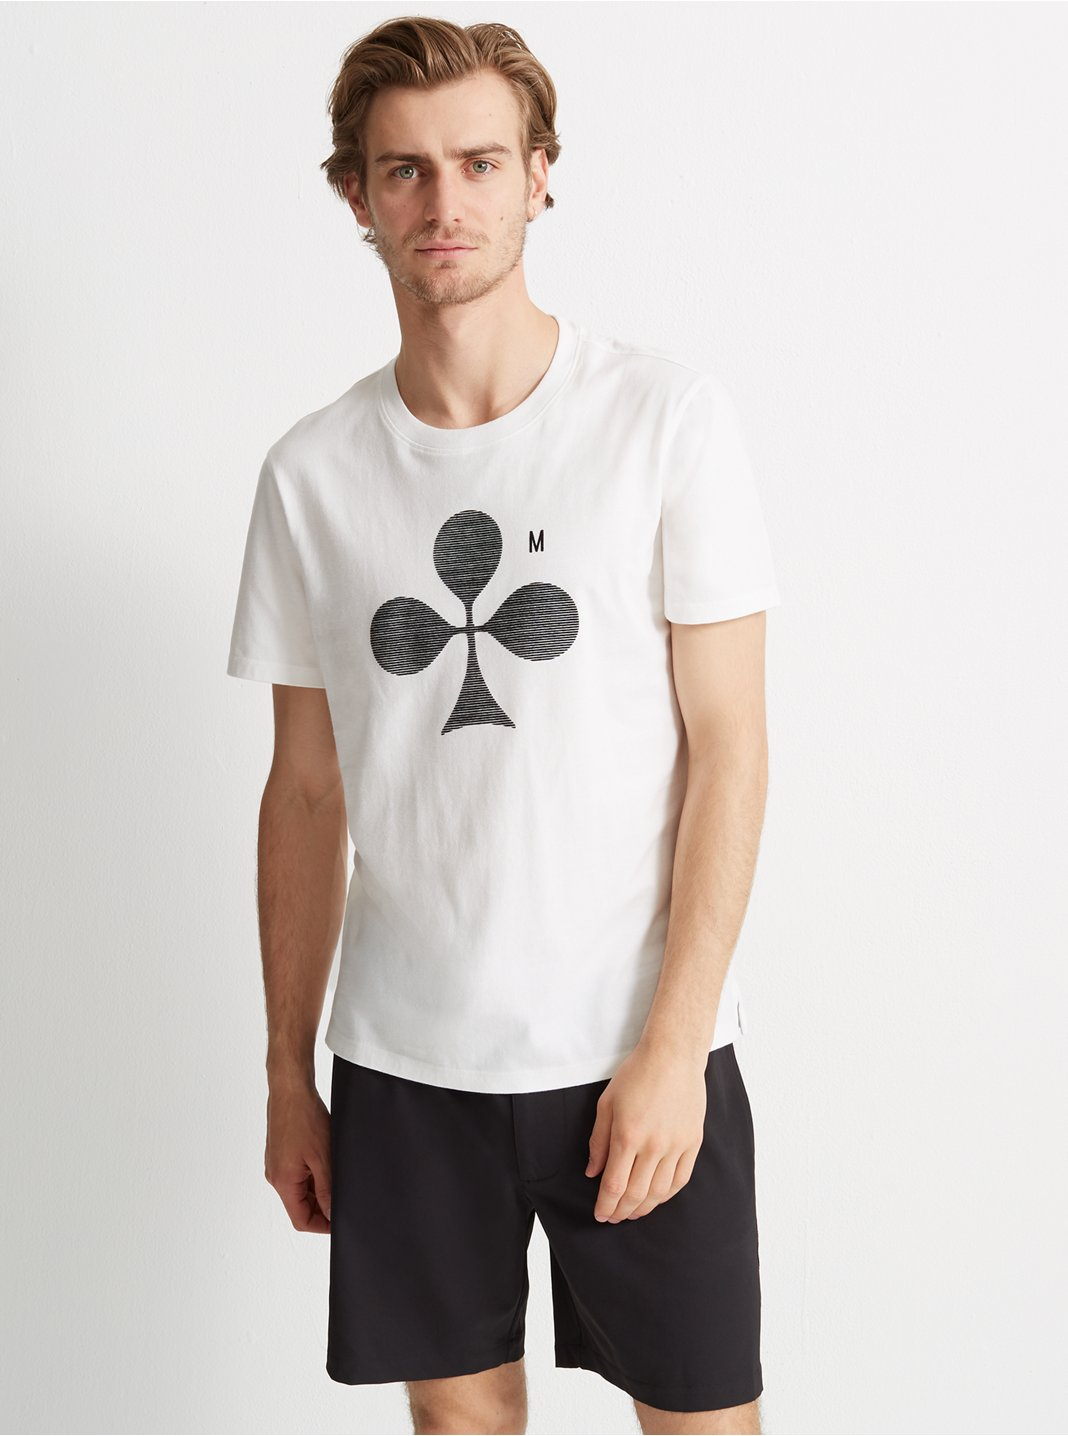 Club Monaco Graphic Tee